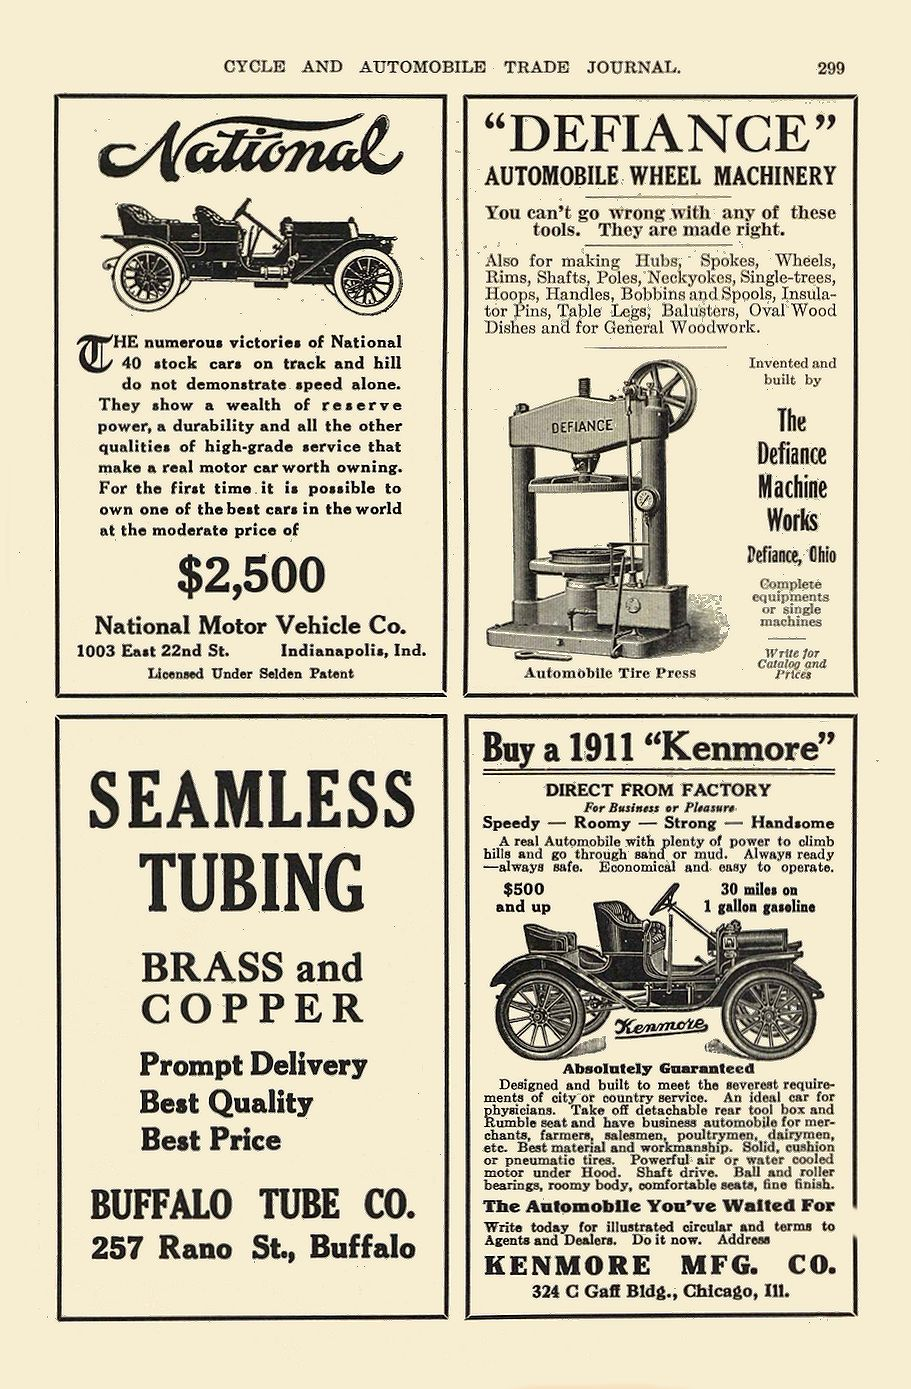 1911 12 NATIONAL National $2,500 National Motor Vehicle Co. Indianapolis, IND CYCLE AND AUTOMOBILE TRADE JOURNAL December 1910 6.5″x10″ page 299